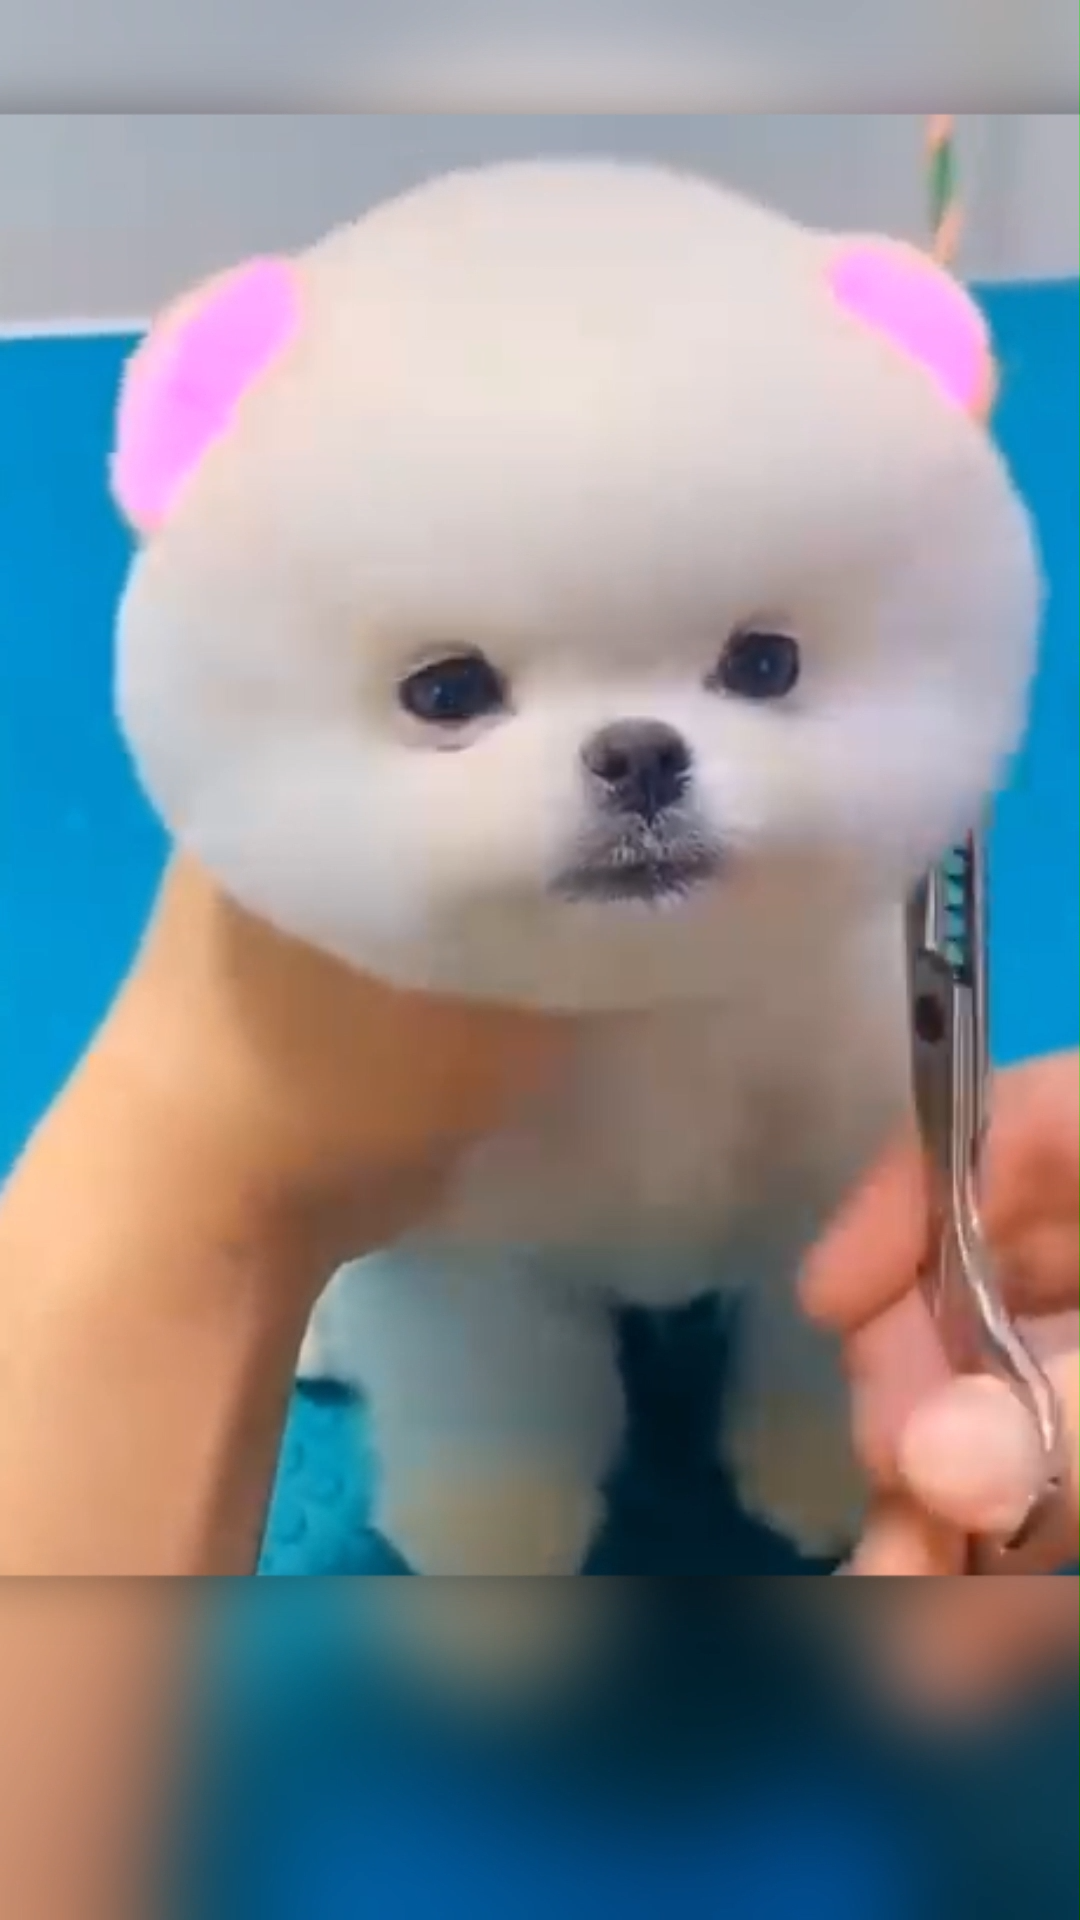 Oddly Satisfying Cute Puppy Grooming #1